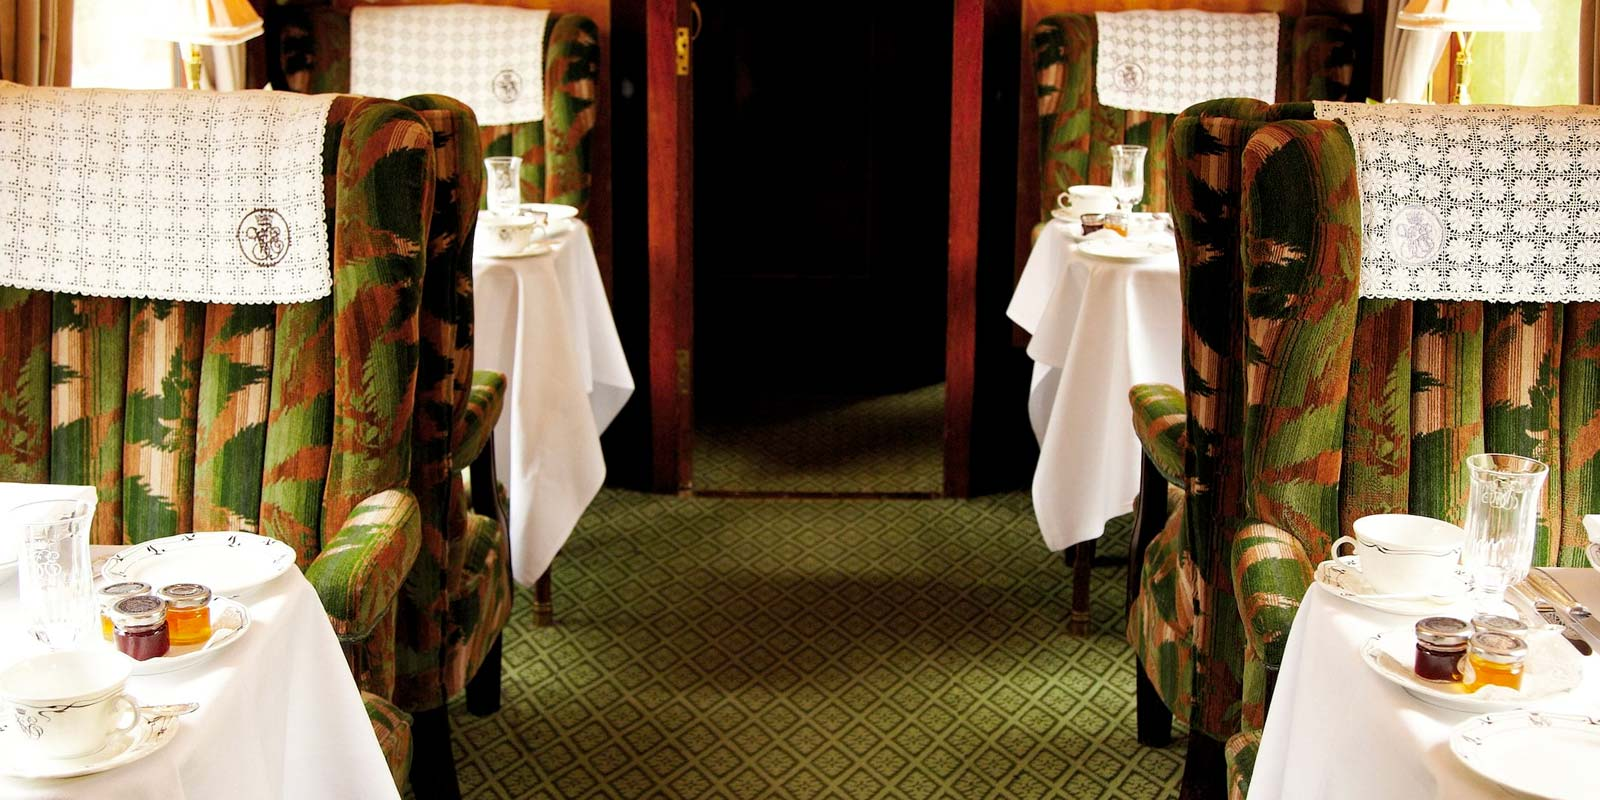 Goodwood Revival aboard the Belmond British Pullman